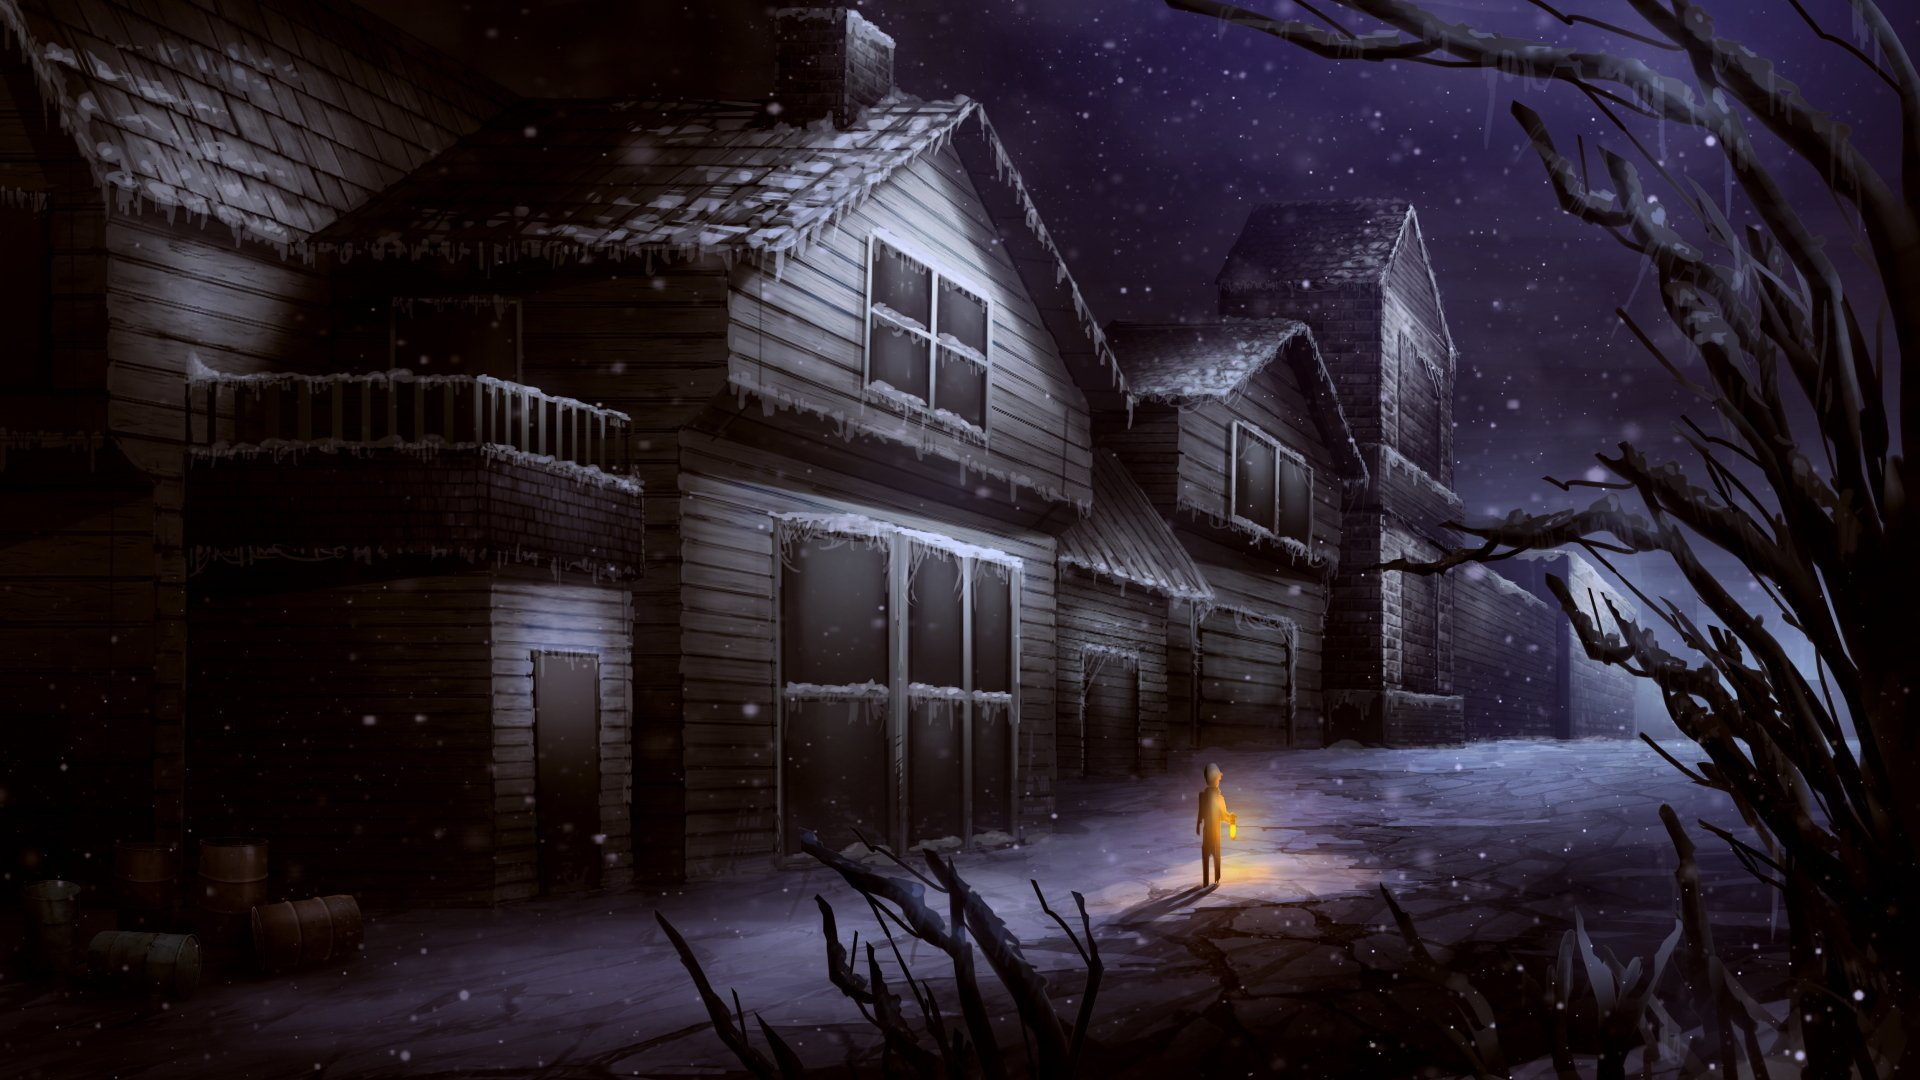 Little Boy Alone on Winter Night 4k Ultra HD Wallpaper and ...